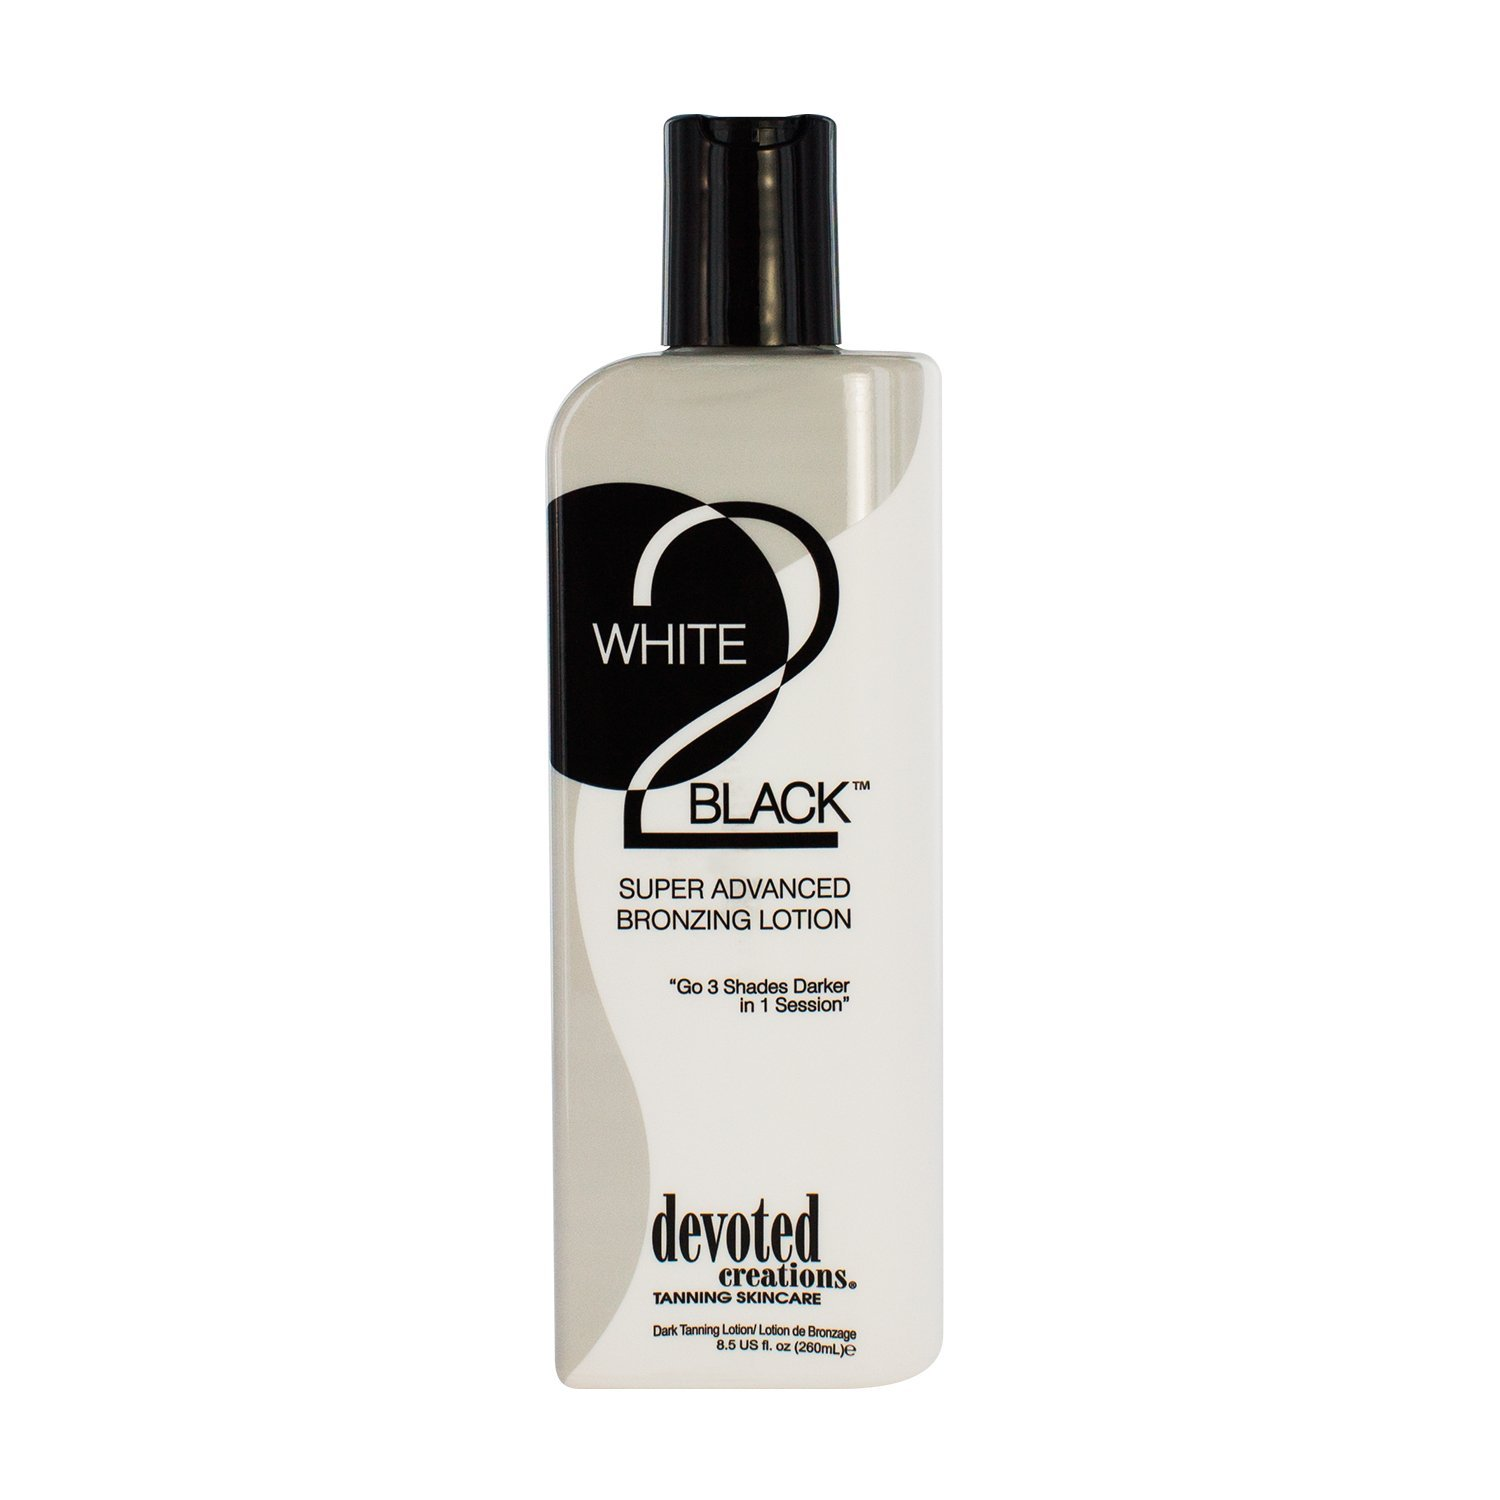 Devoted Creations White 2 Black Supre Advanced Bronzer Tanning Lotion, 8.5 Ounce by Devoted Creations